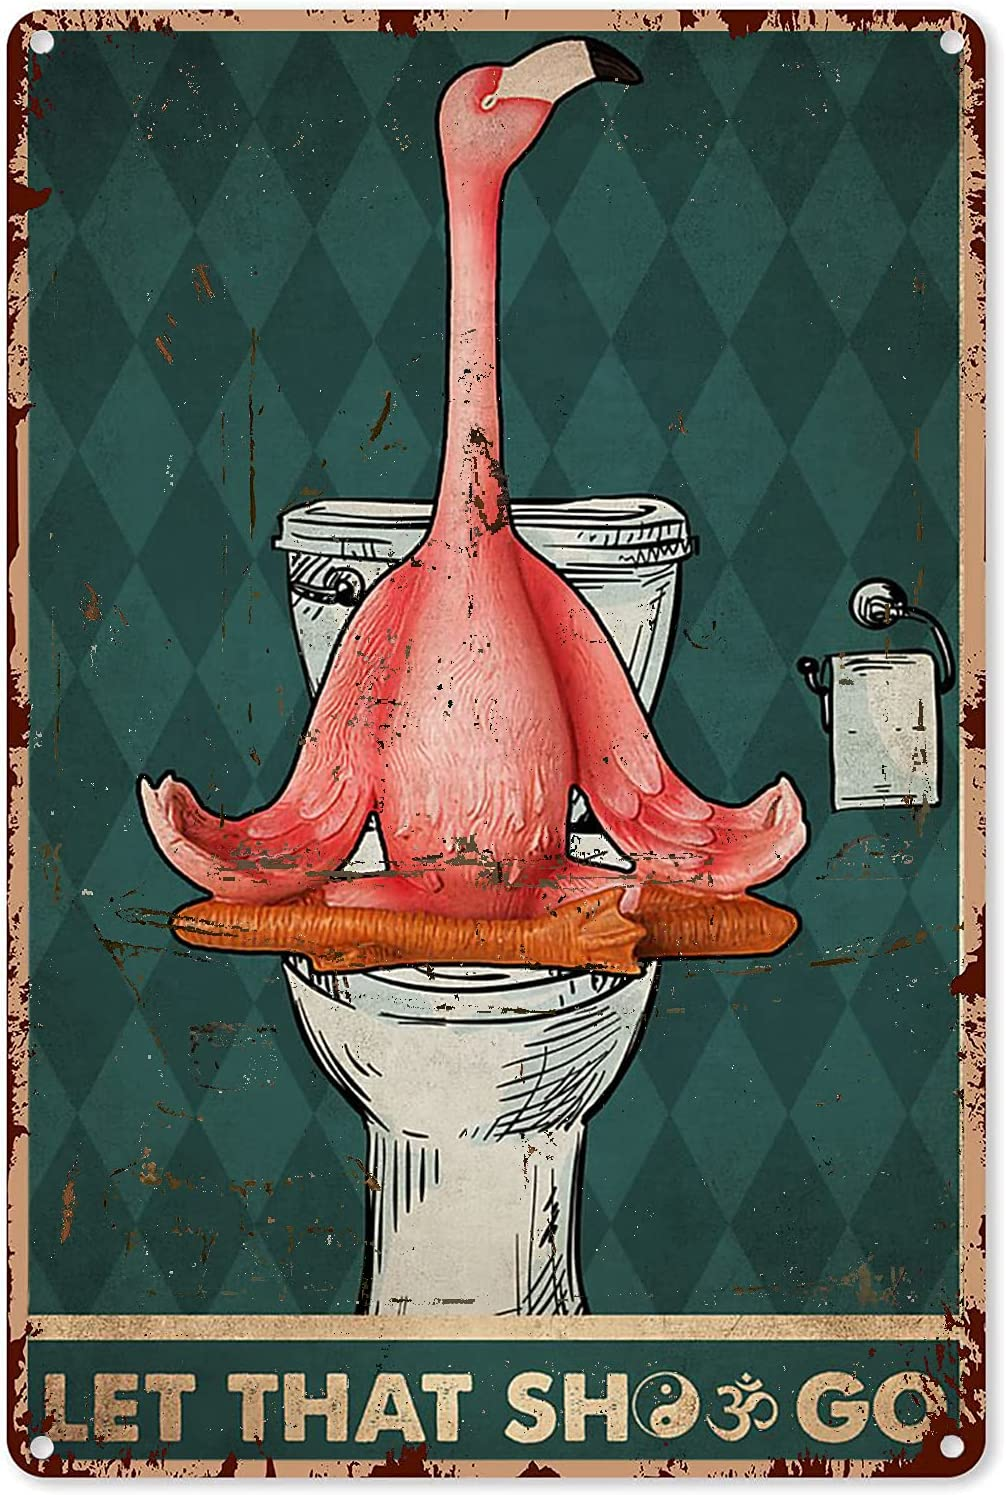 Pink Flamingo Tin Sign Yoga Let That Shit Go Flamingo Metal Sign Decor Tin Aluminum Sign Wall Art Metal Poster for Home Party Bathroom Outdoor 12x8 inch